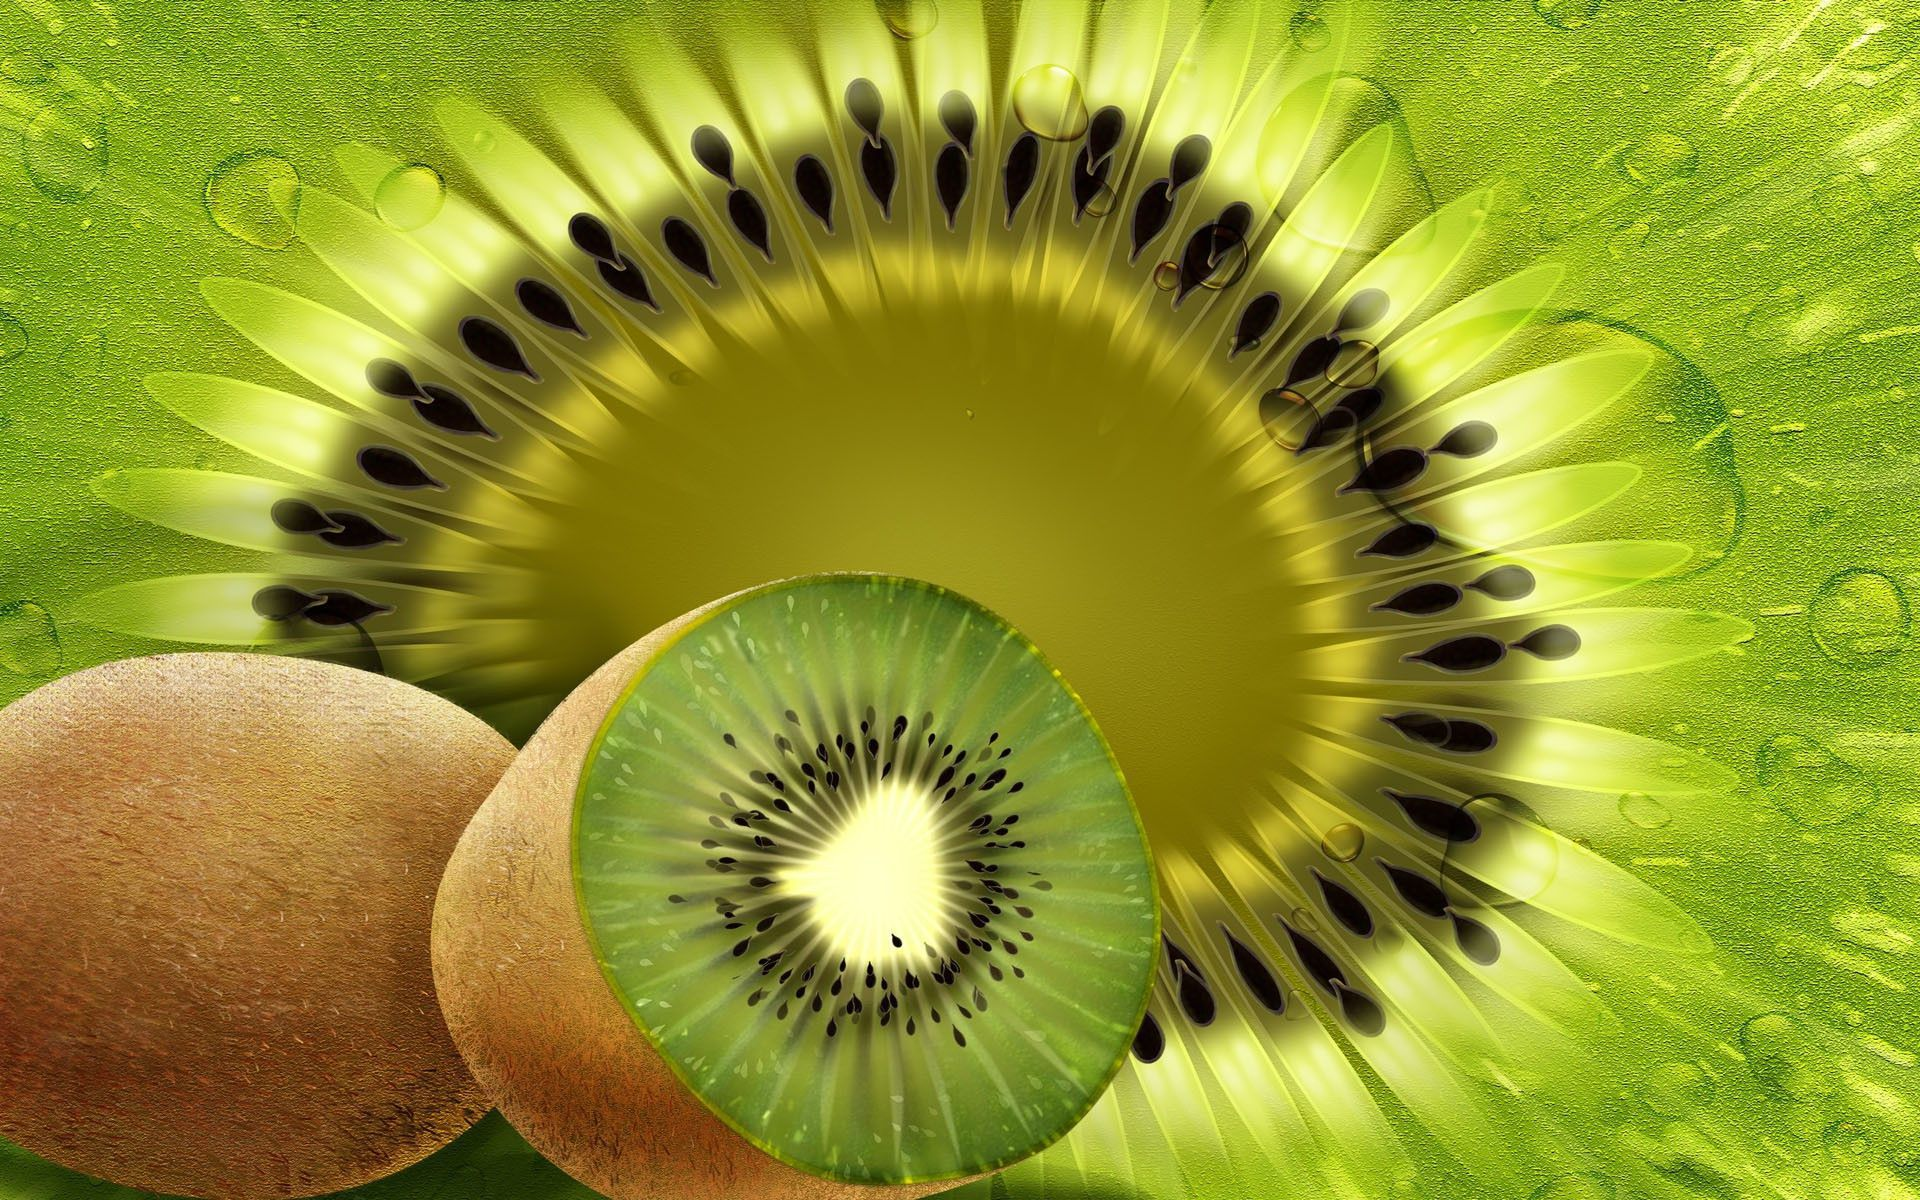 Pictures Of Kiwi